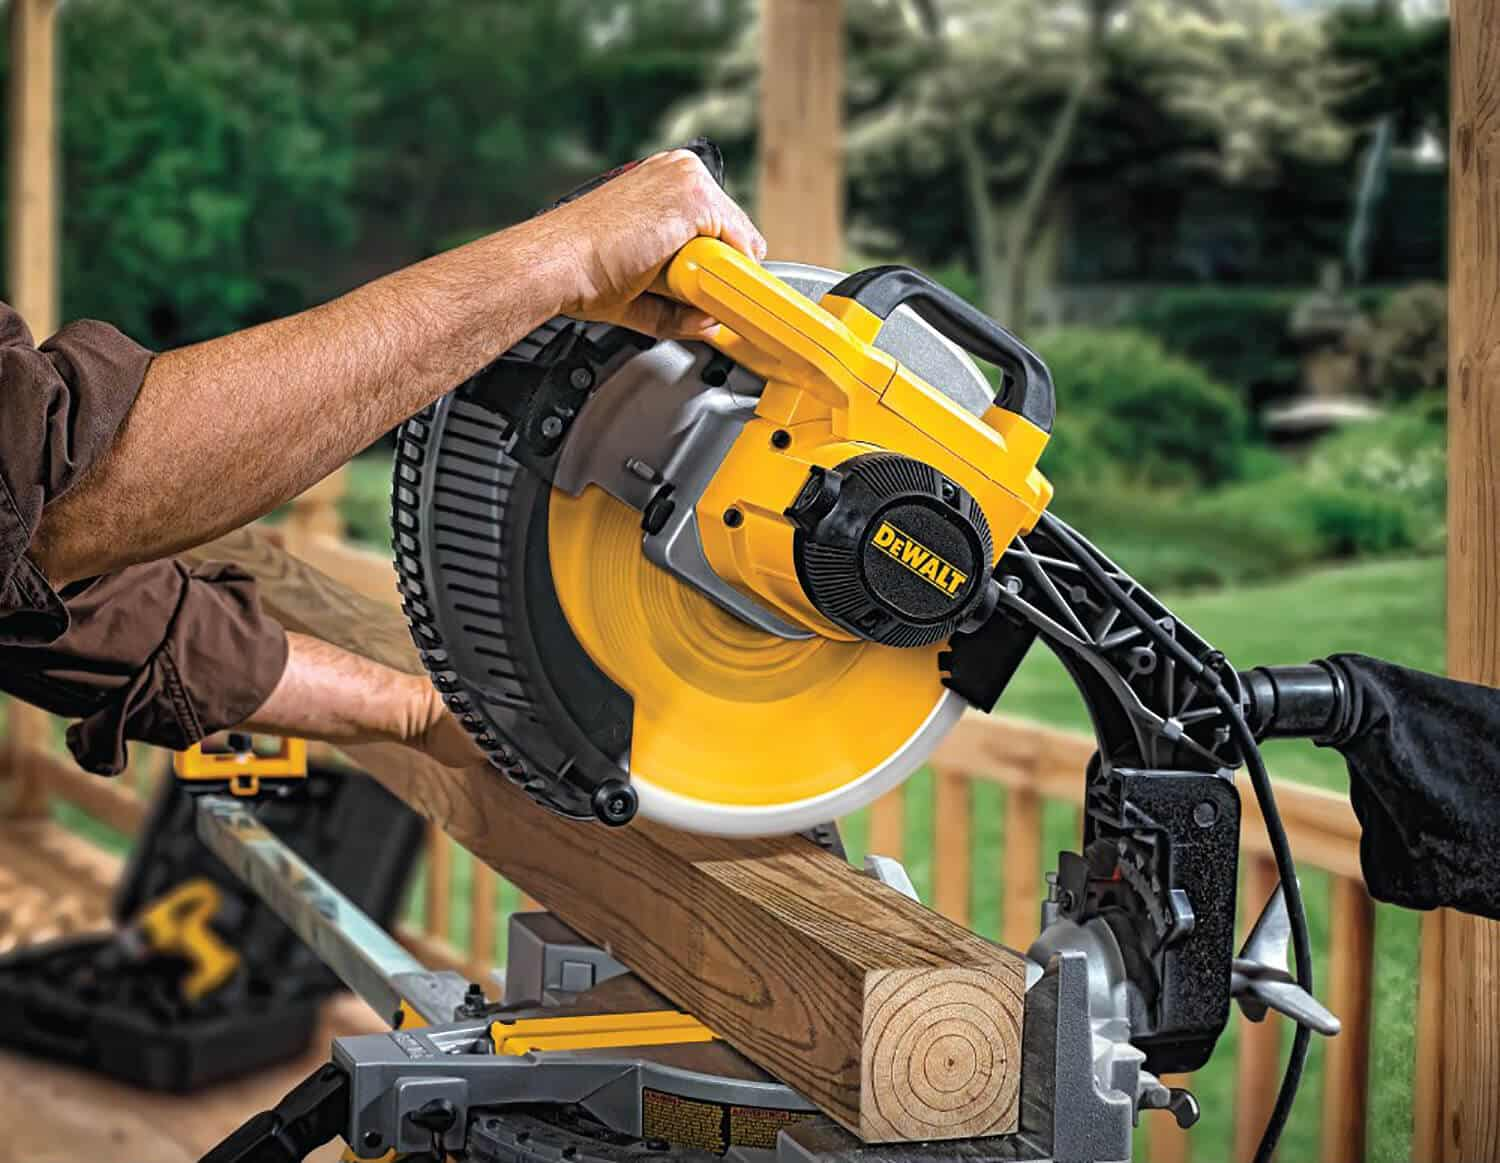 What Is The Difference Between A Compound And Sliding Miter Saw - The Compound Miter Saw